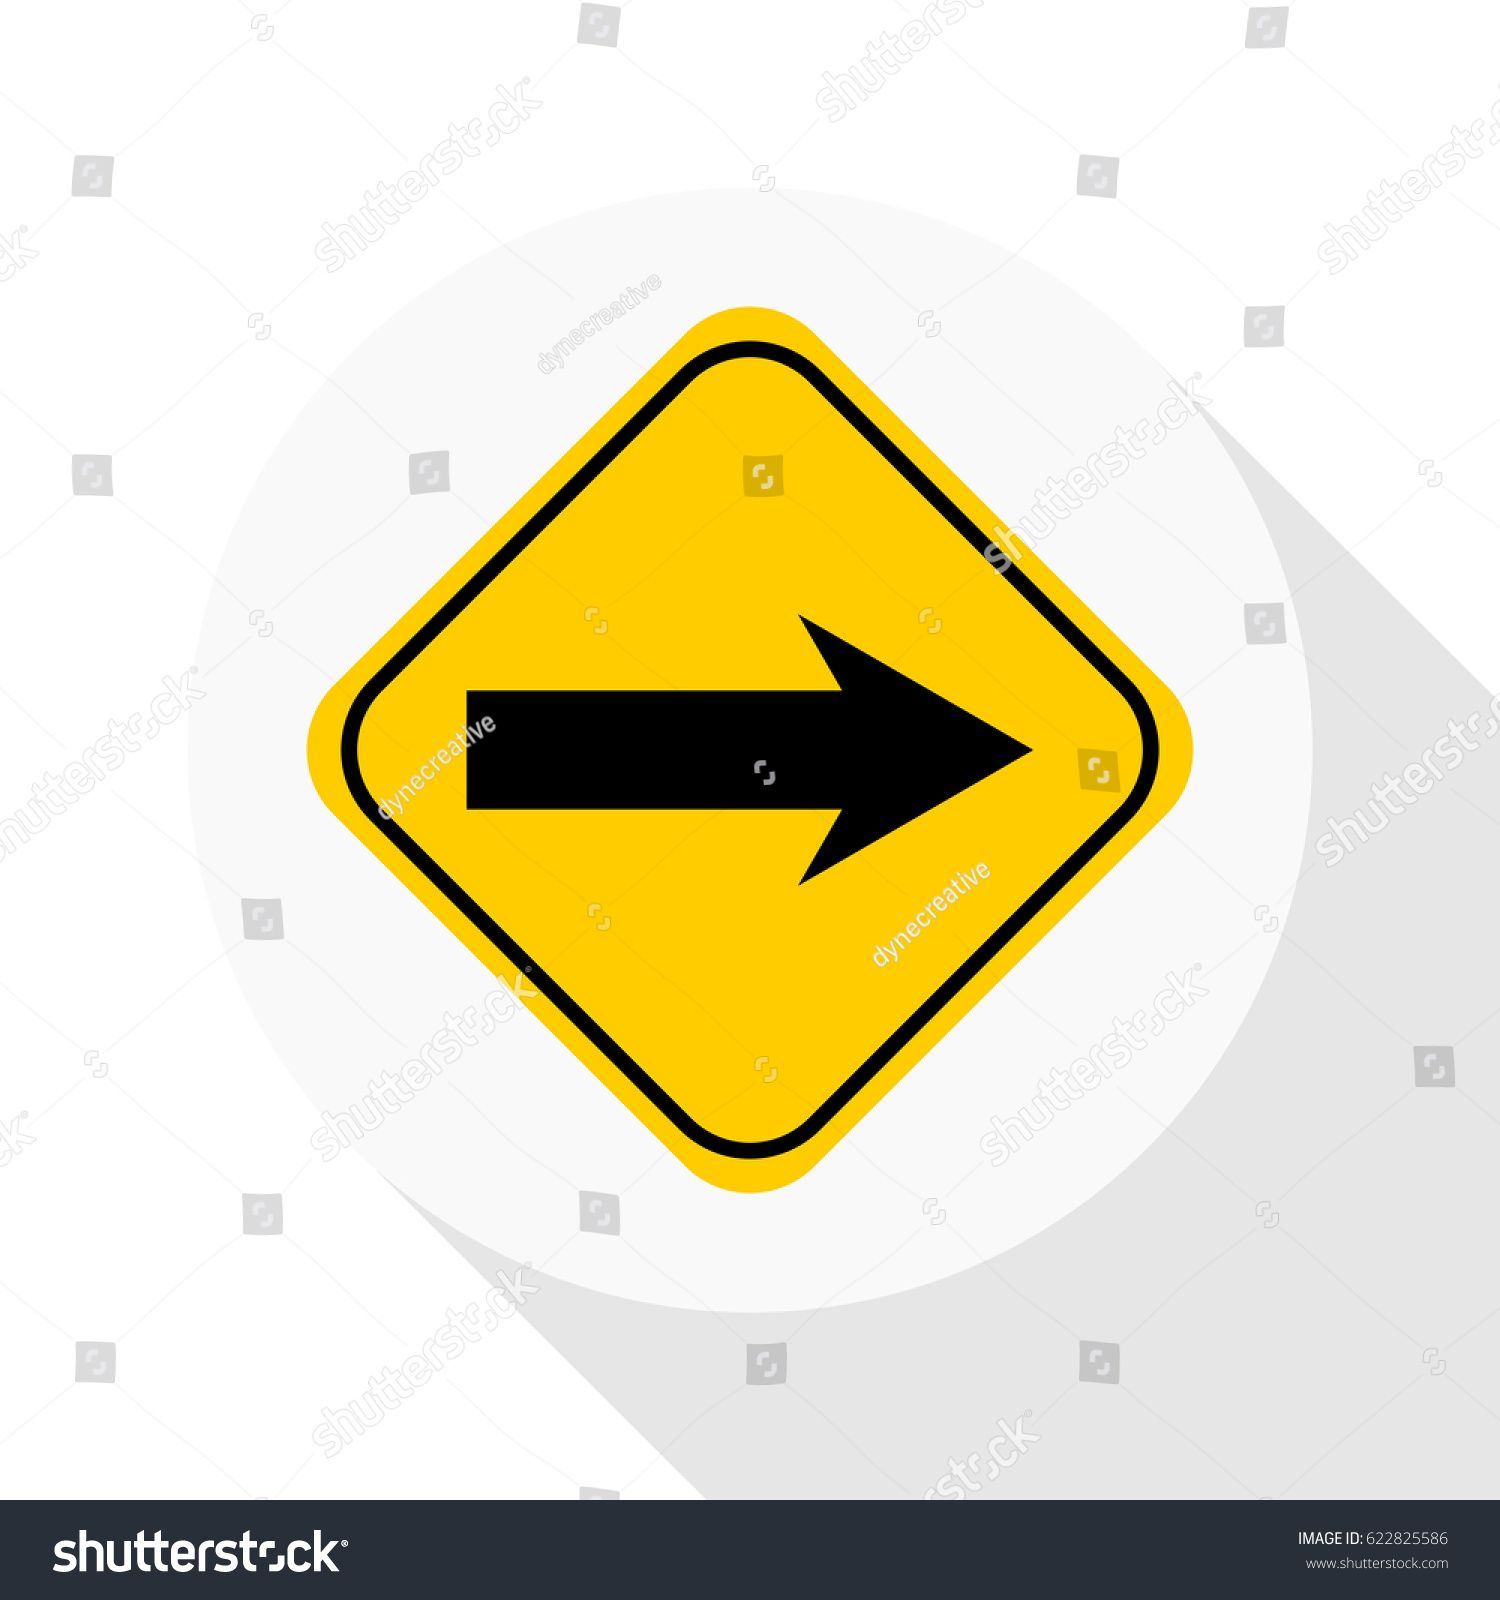 Traffic Light Sign Warning Vector Design Ad Sponsored Sign Light Traffic Design In 2020 Photo Editing Industrial Photography Stock Photos